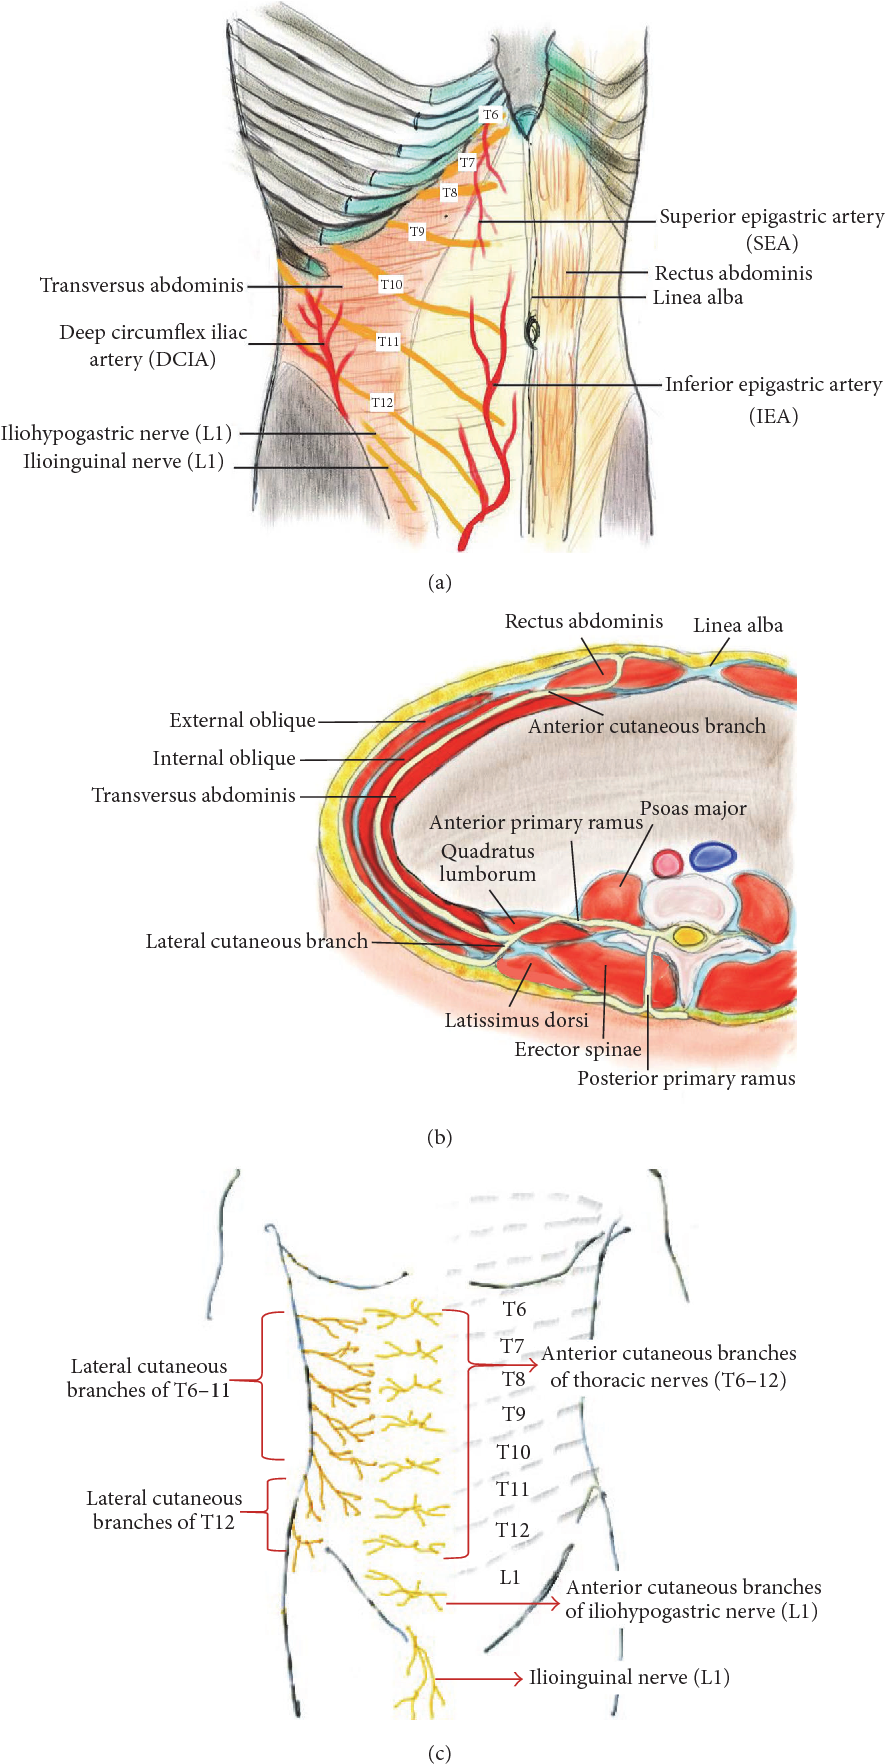 Transversus Abdominis Plane Block: An Updated Review of Anatomy and ...